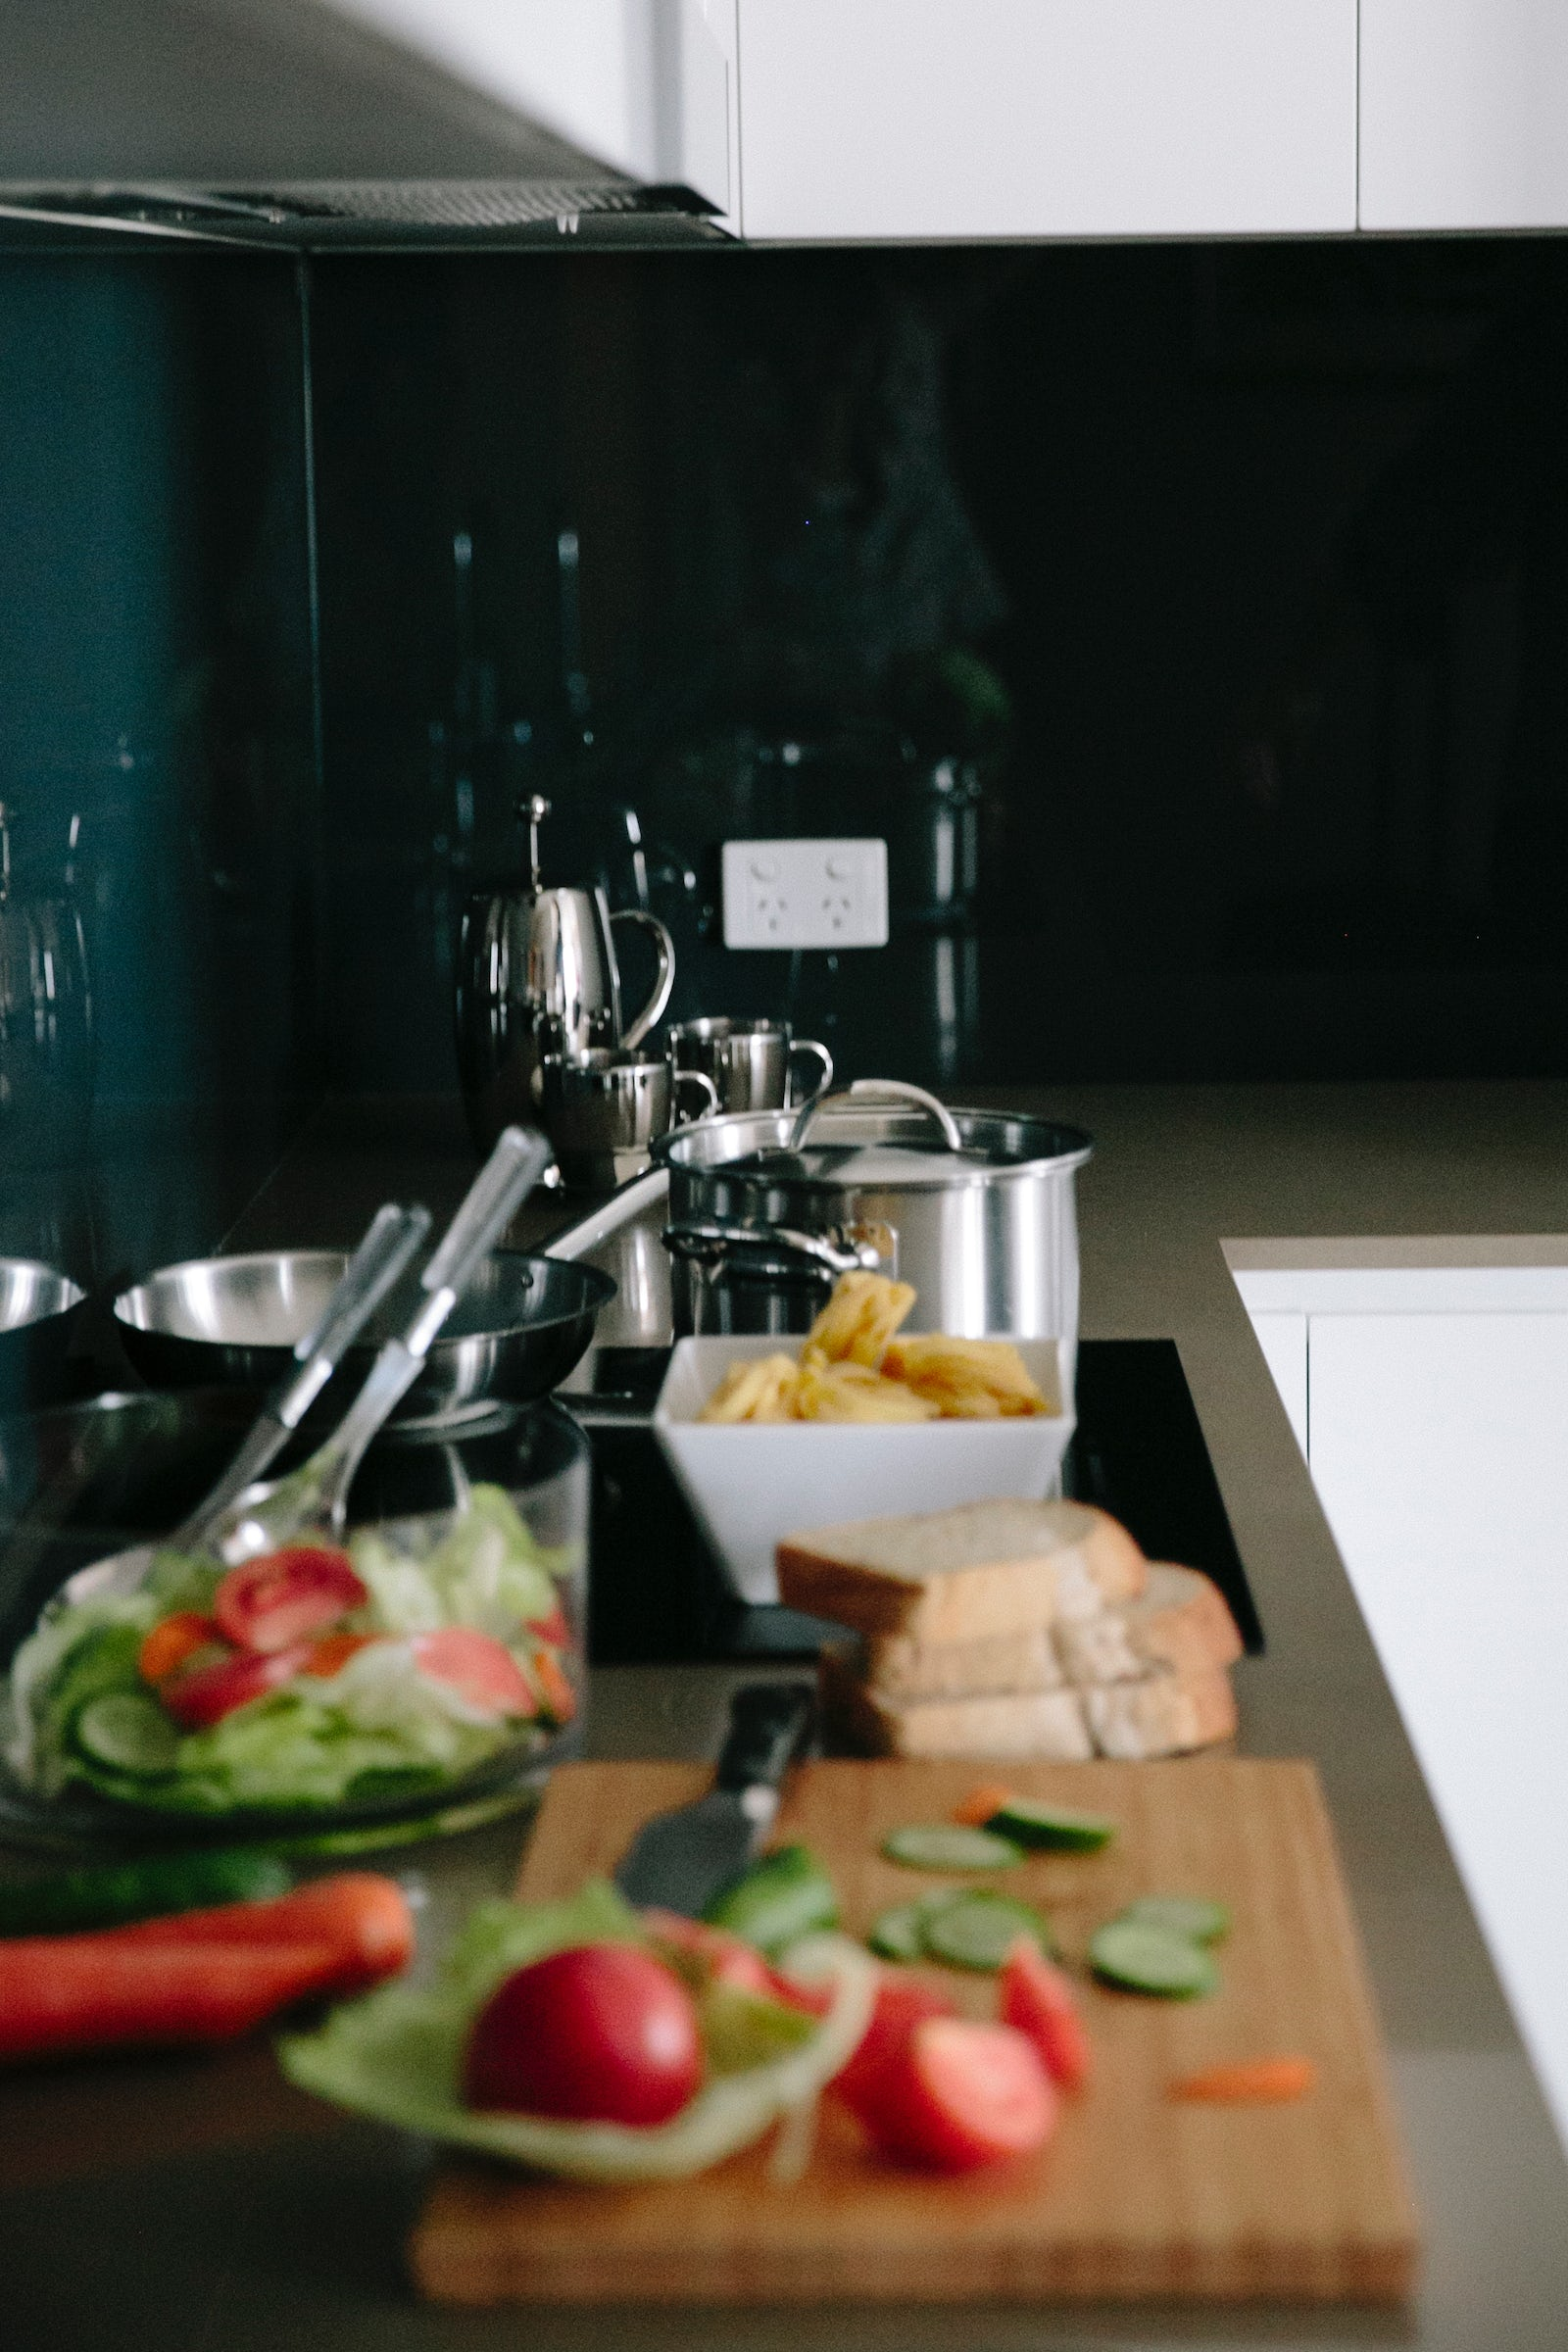 An image of food being prepared in the kitchen of Aria Hotel family apartments in Canberra CBD